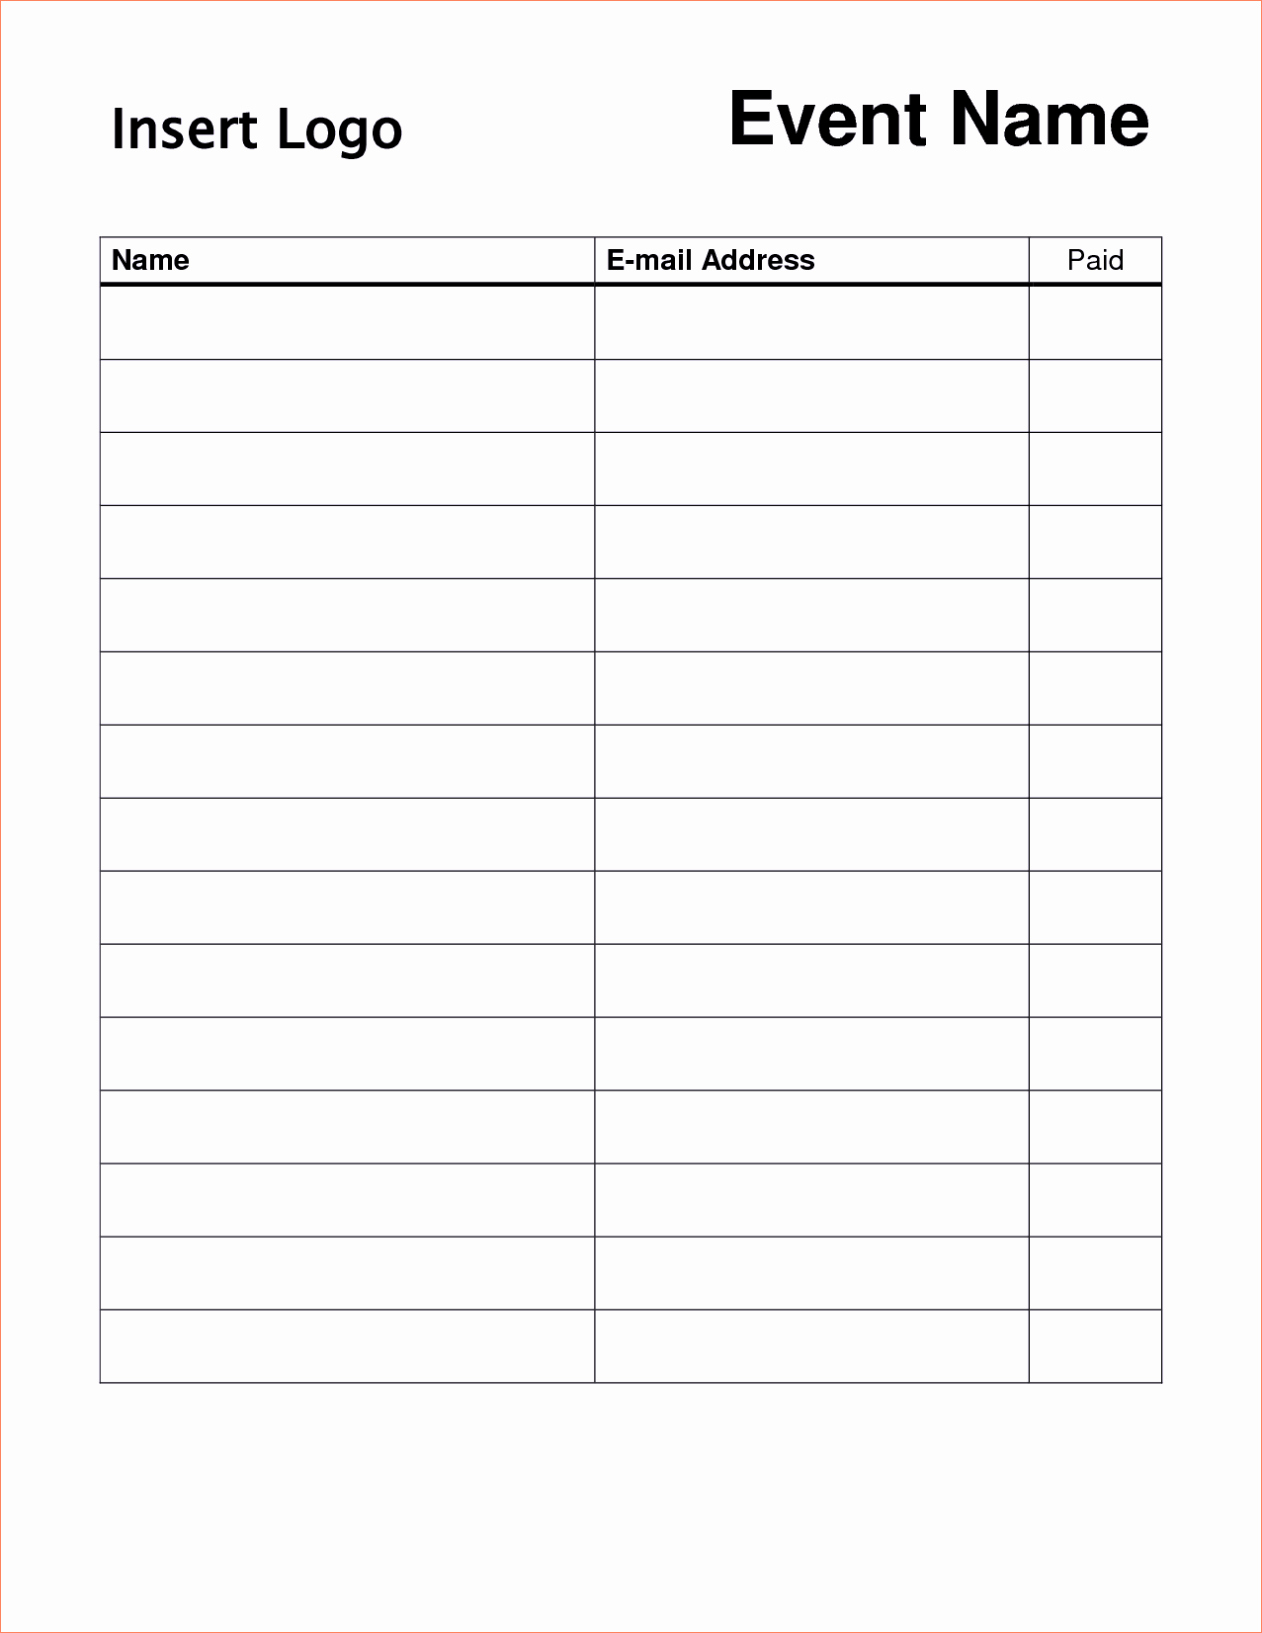 Volunteer Sign Up Sheet Printable Unique Printable Sign Up Sheet Template Word Excel